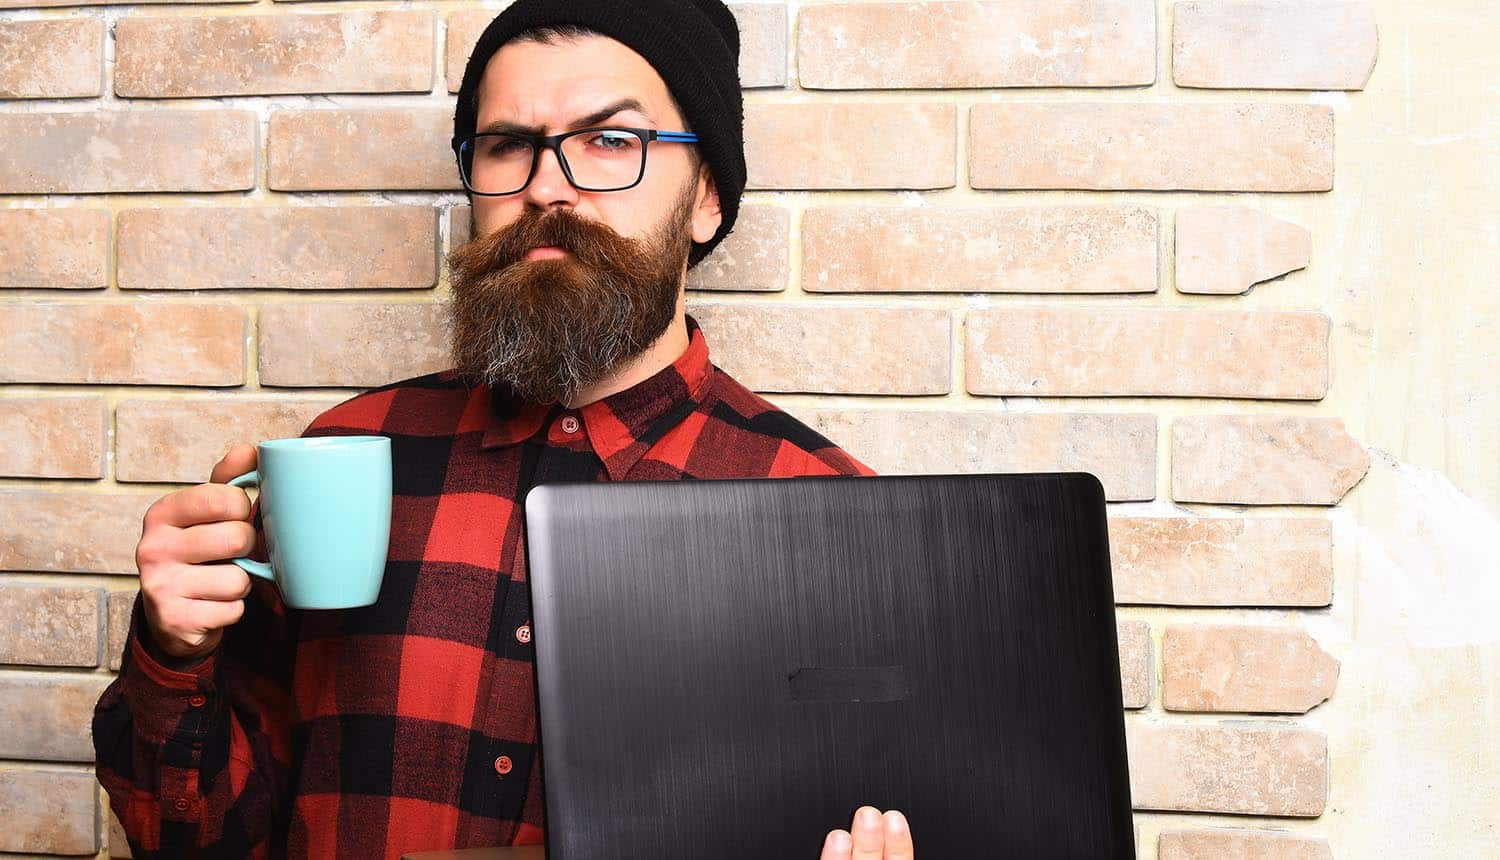 Serious unshaven developer holding laptop showing No Code and Low Code security risks